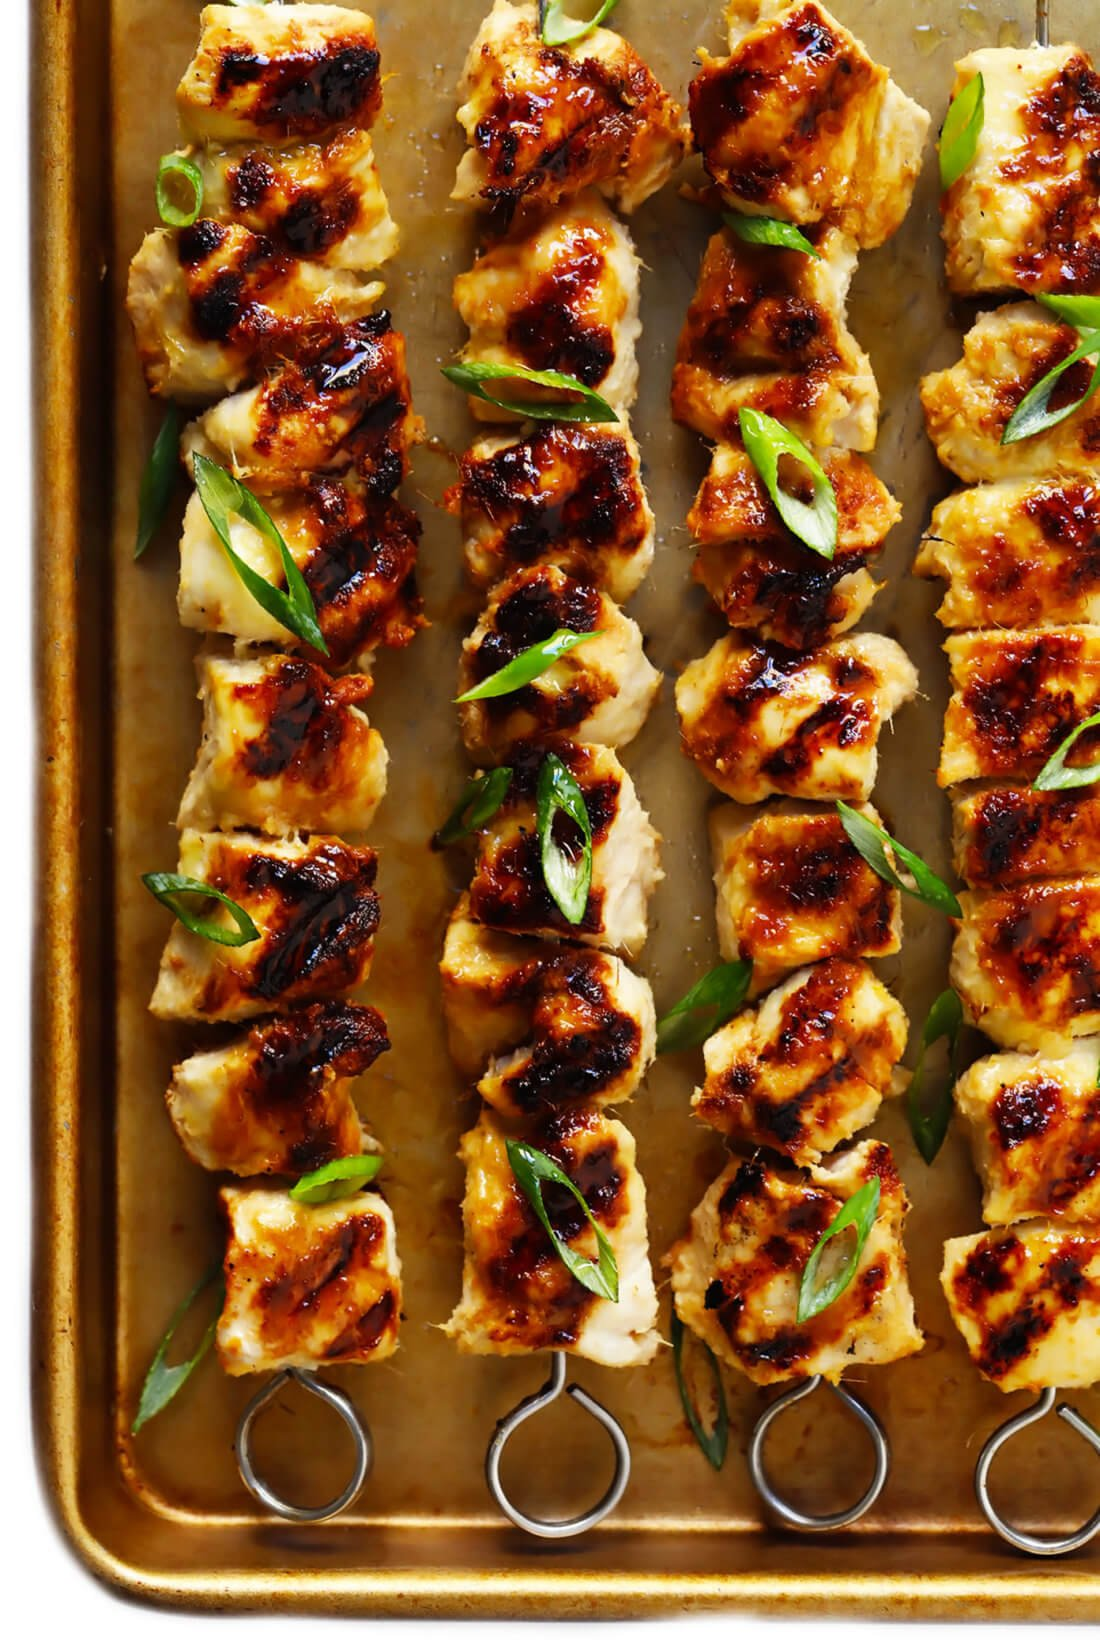 Vietnamese lemongrass chicken kabobs